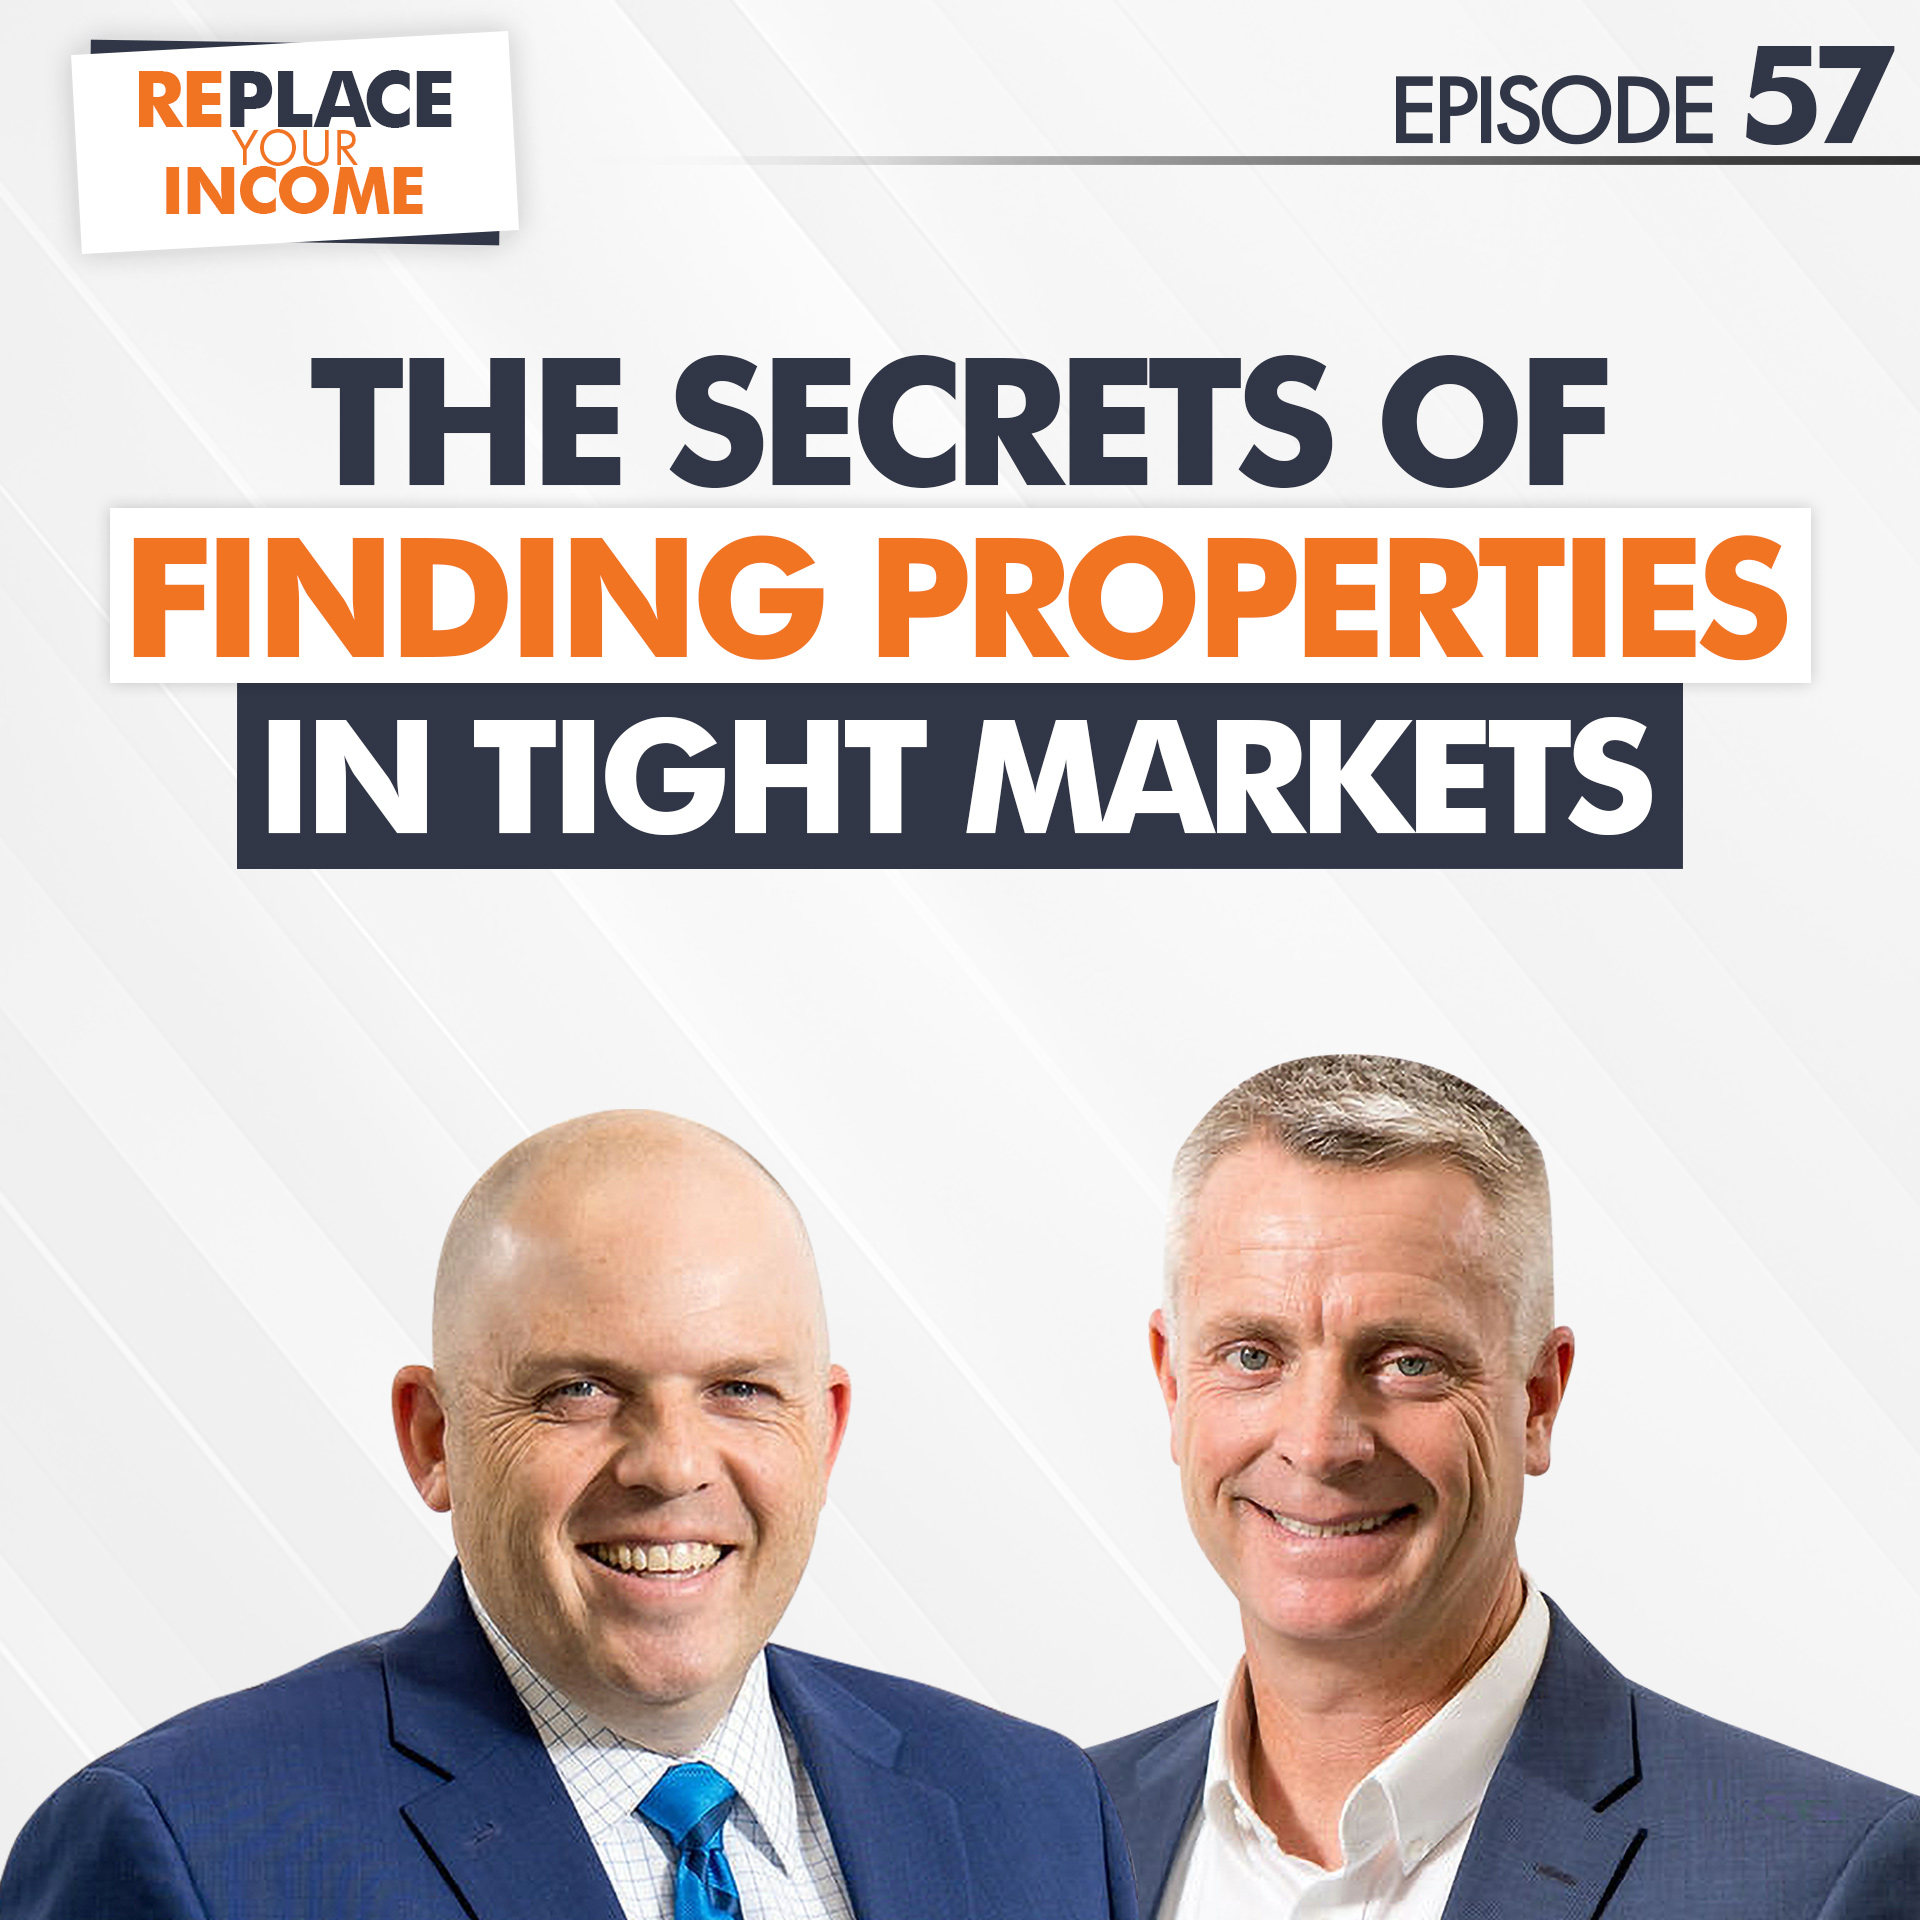 The Secrets of Finding Properties In Tight Markets